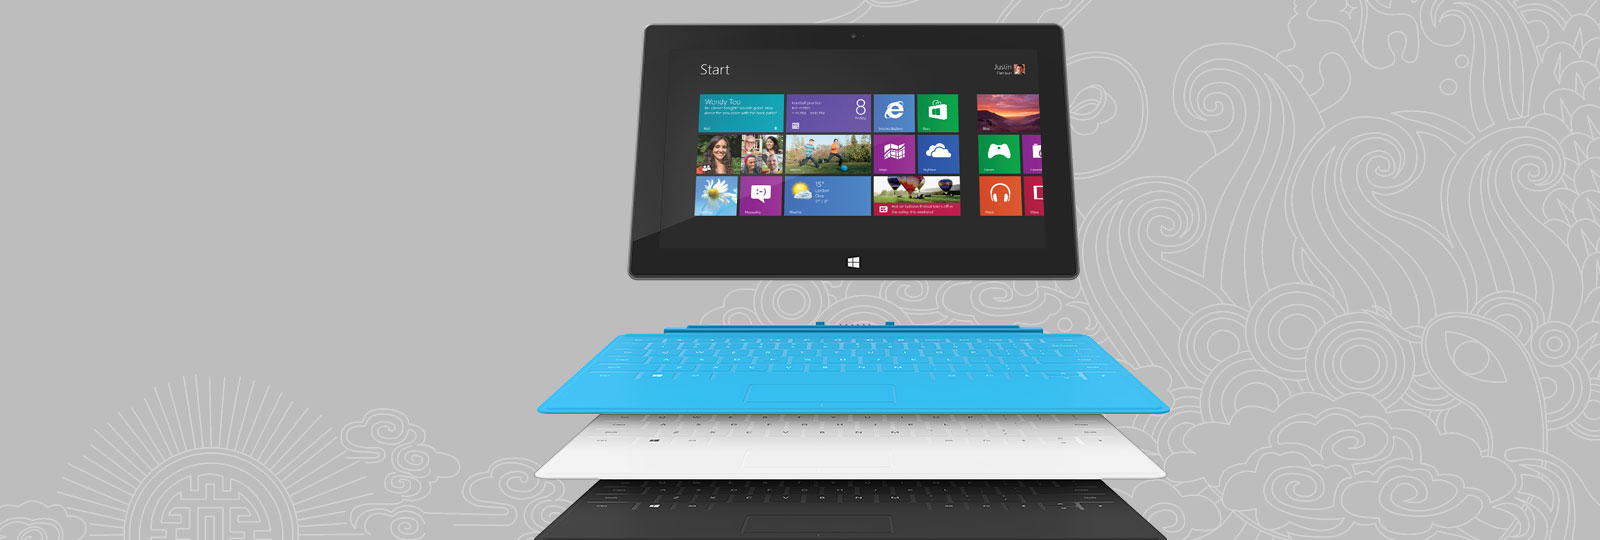 Acquista Surface RT con Cover Touch a soli 488 €.